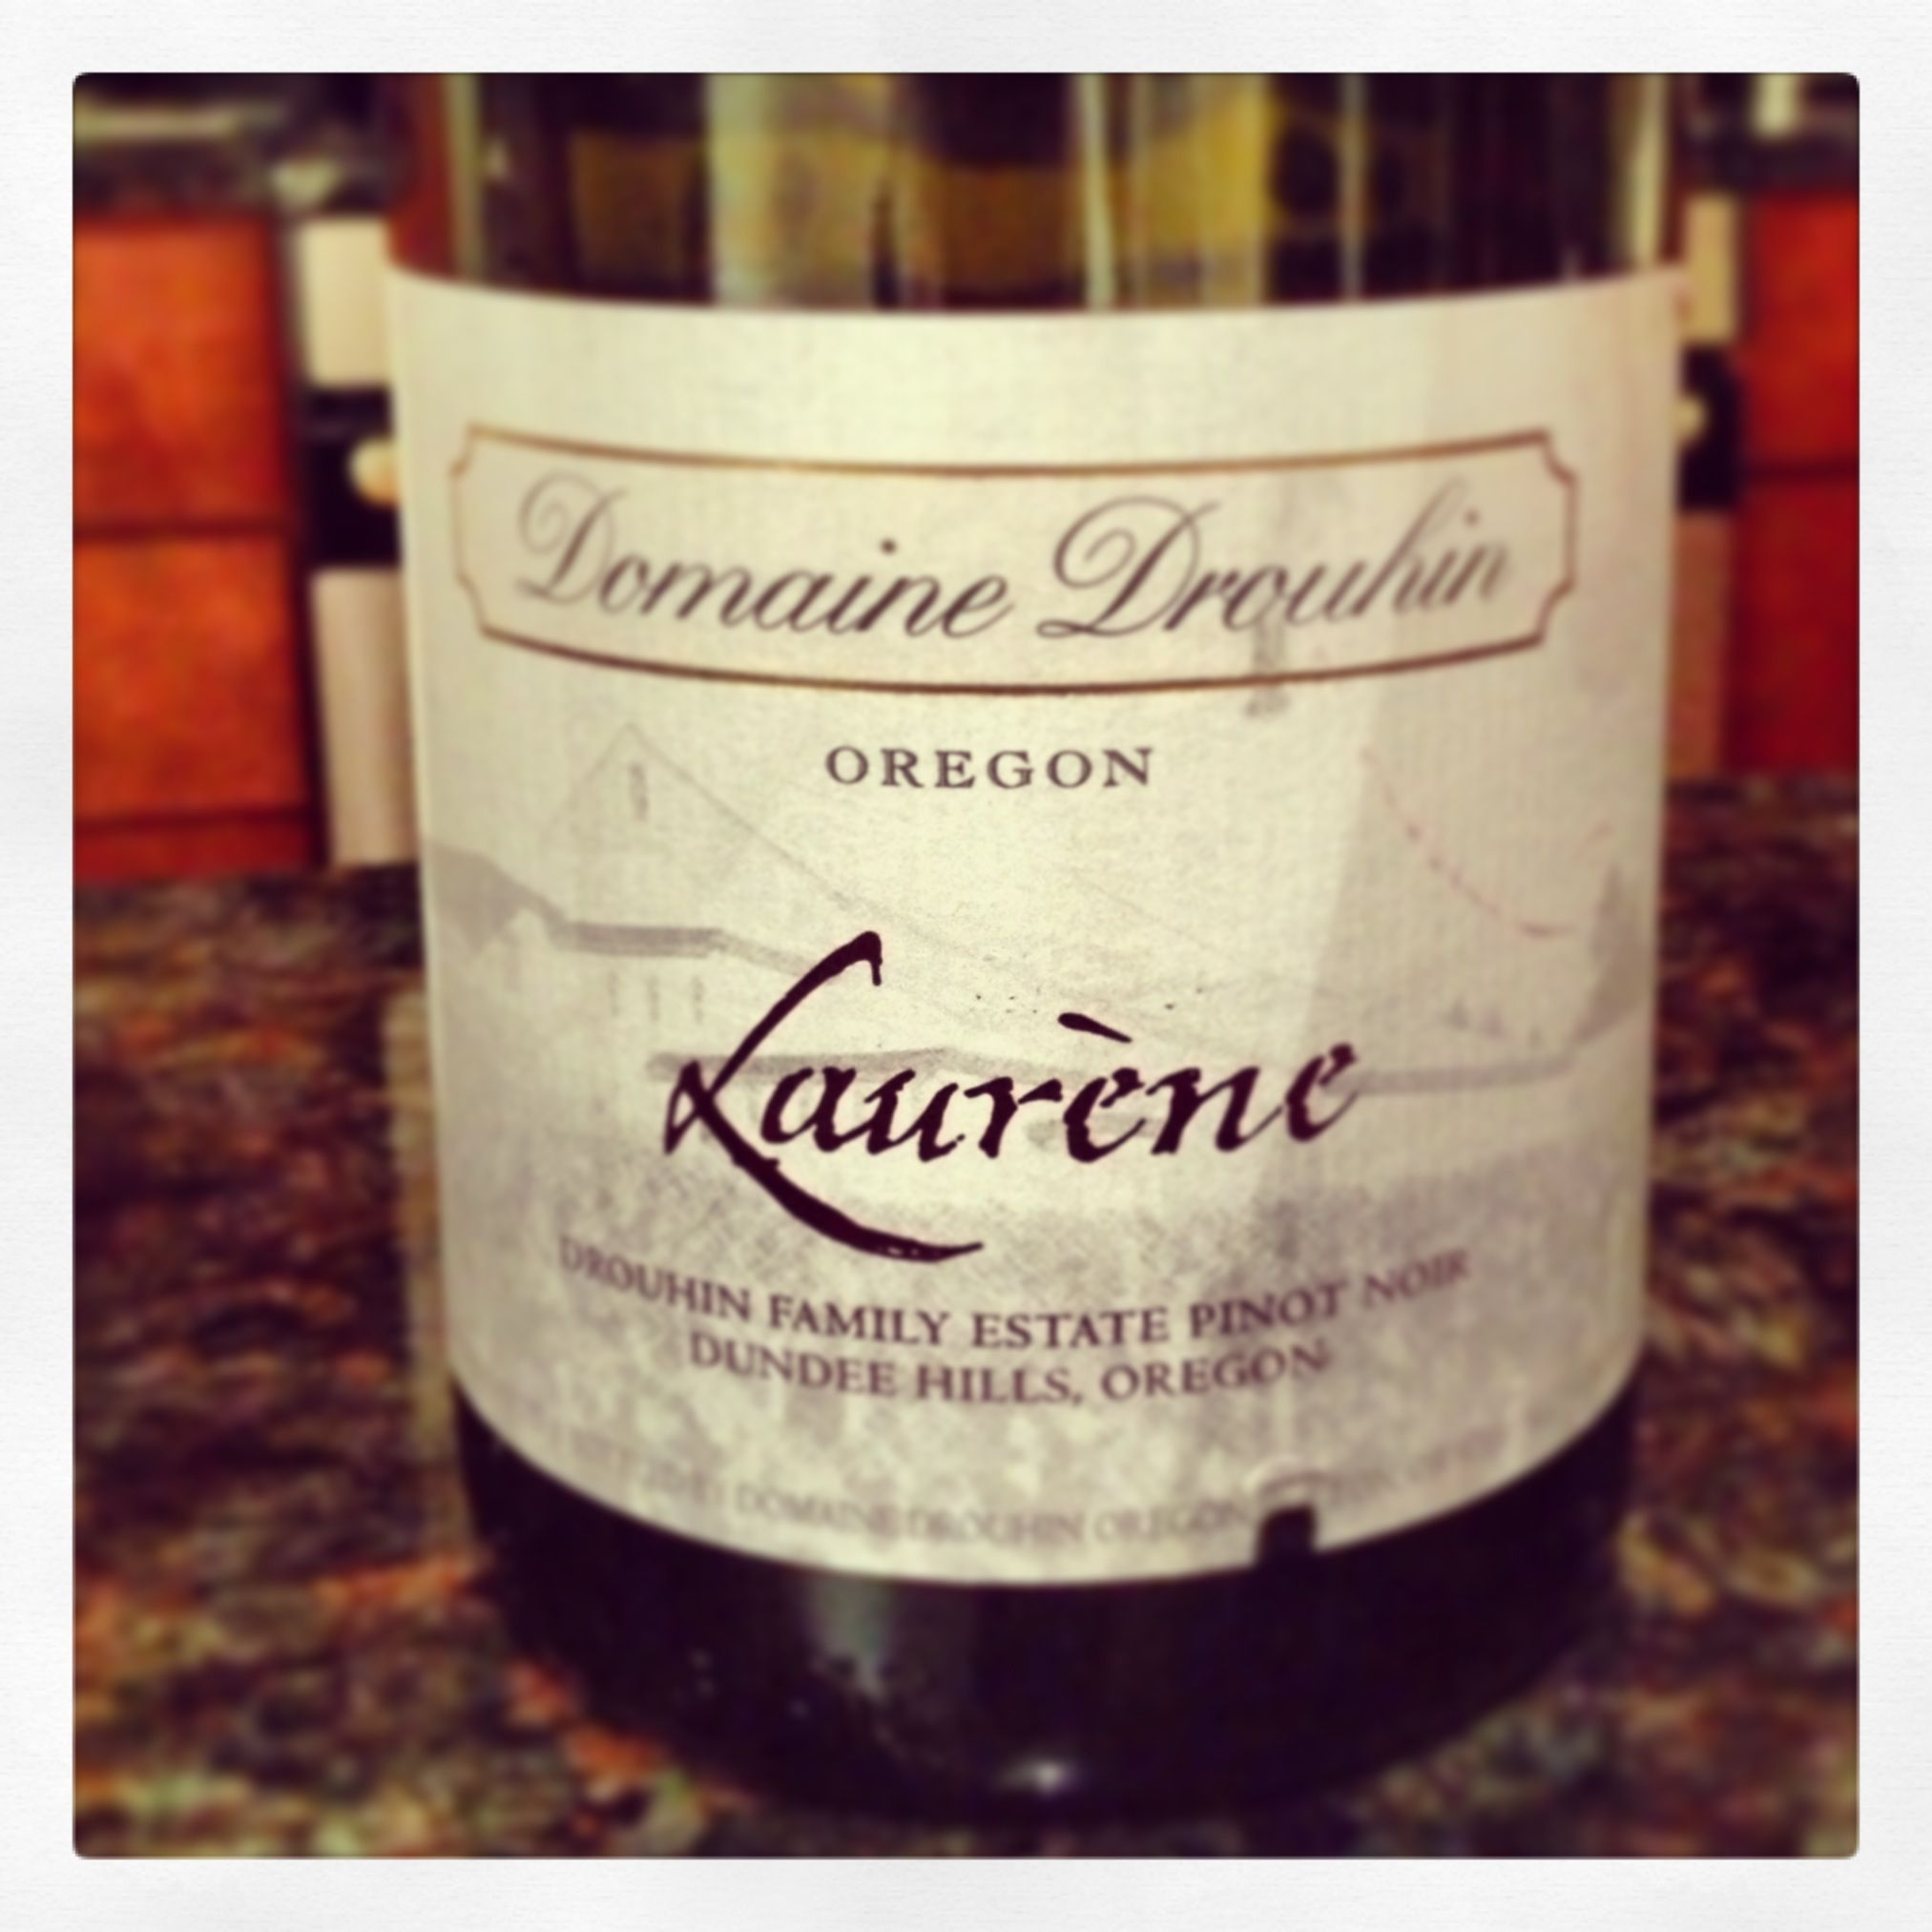 Willamette Valley OR 2006 Domaine Drouhin Laurne Pinot Noir Exceptionally Soft With Cherries